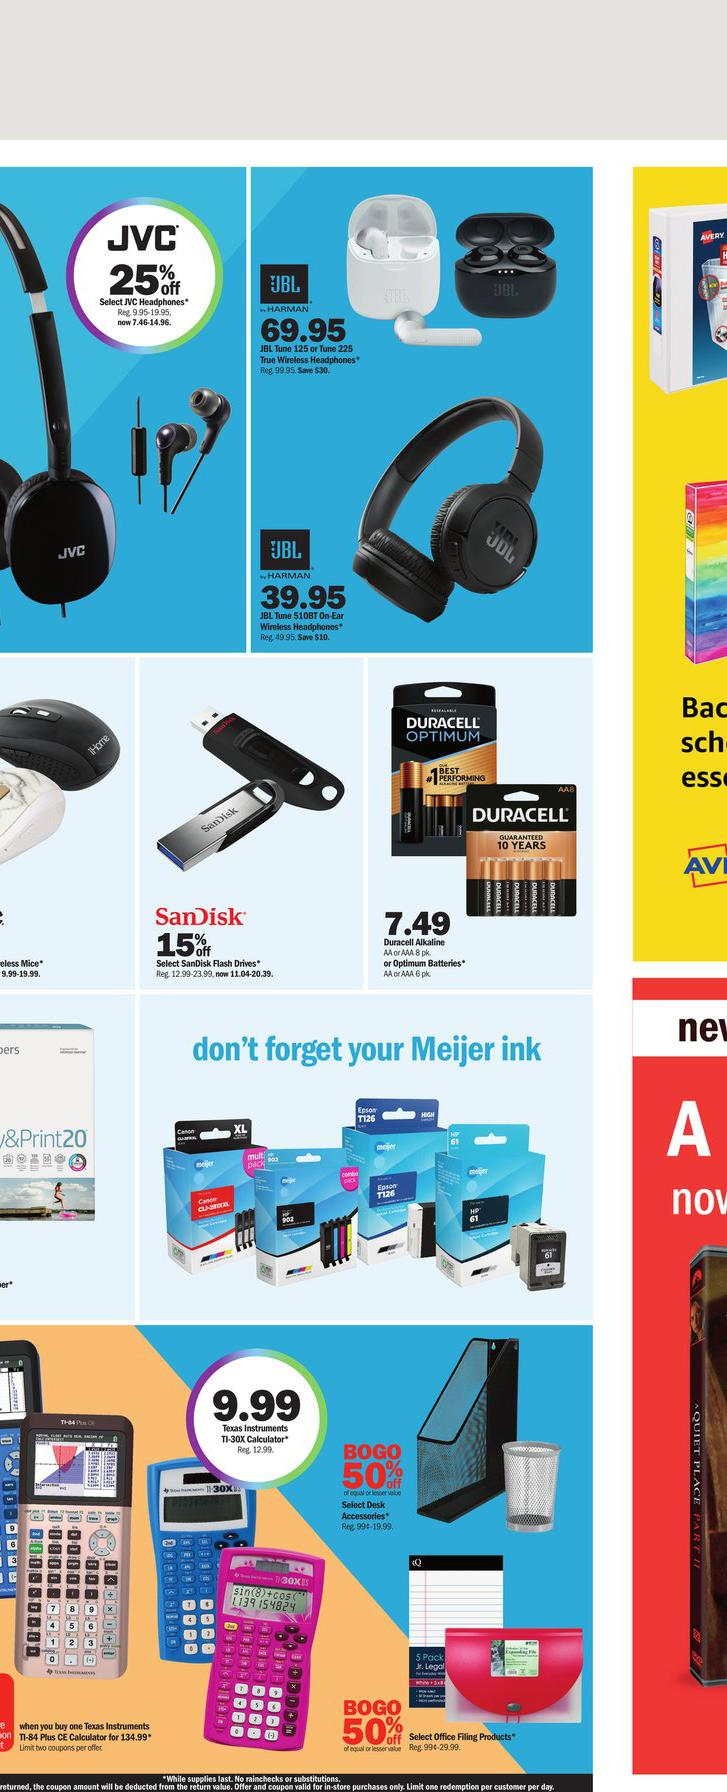 01.08.2021 Meijer ad 22. page